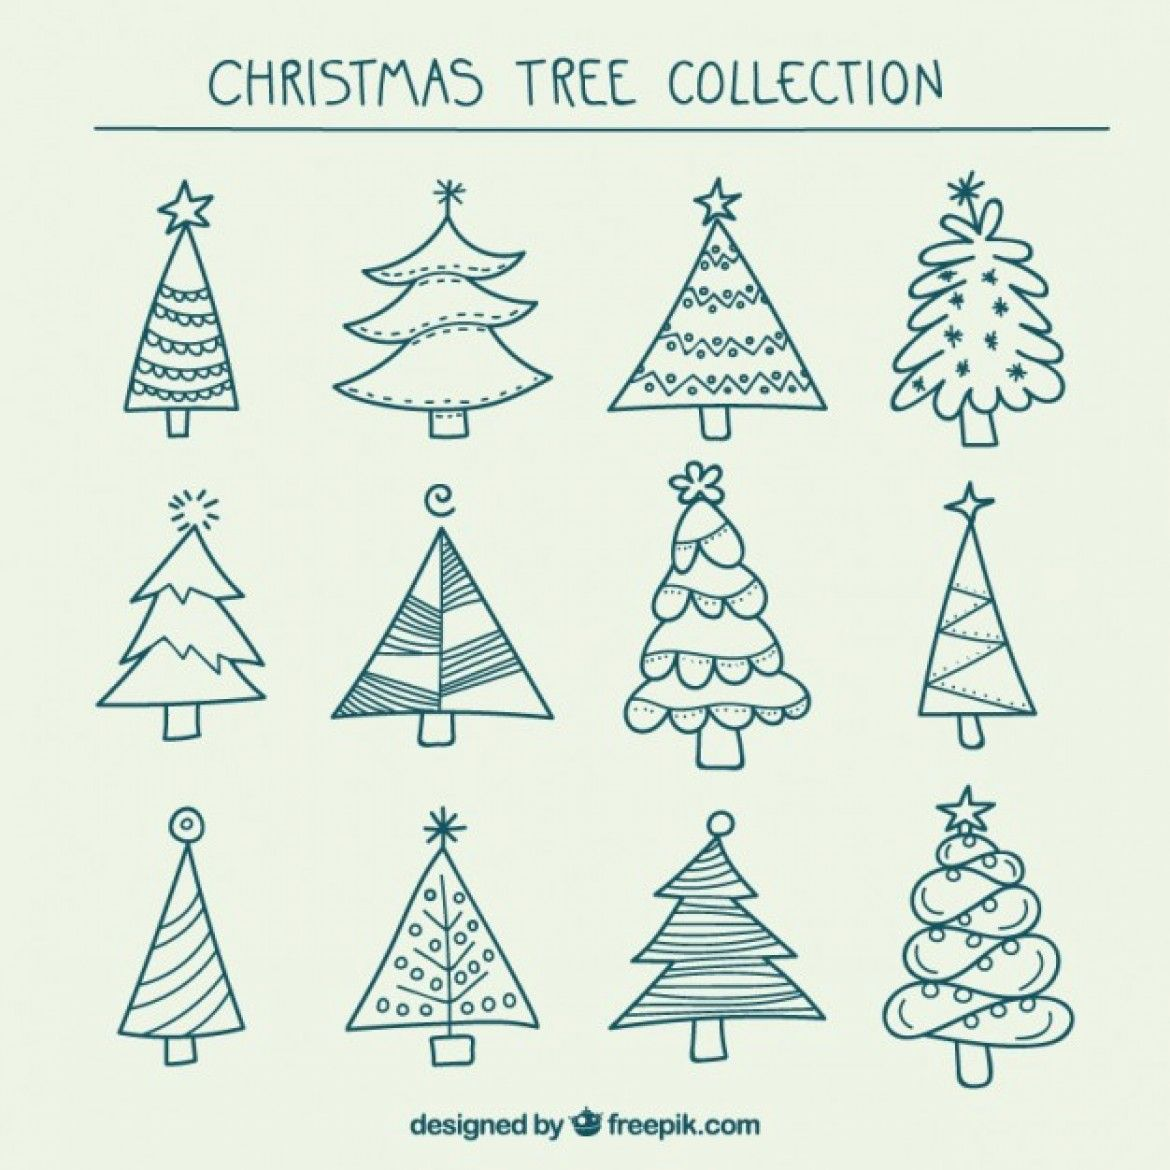 Free Vector Hand Drawn Christmas Trees Collection 25237 Christmas Tree Drawing Christmas Tree Collection Christmas Doodles